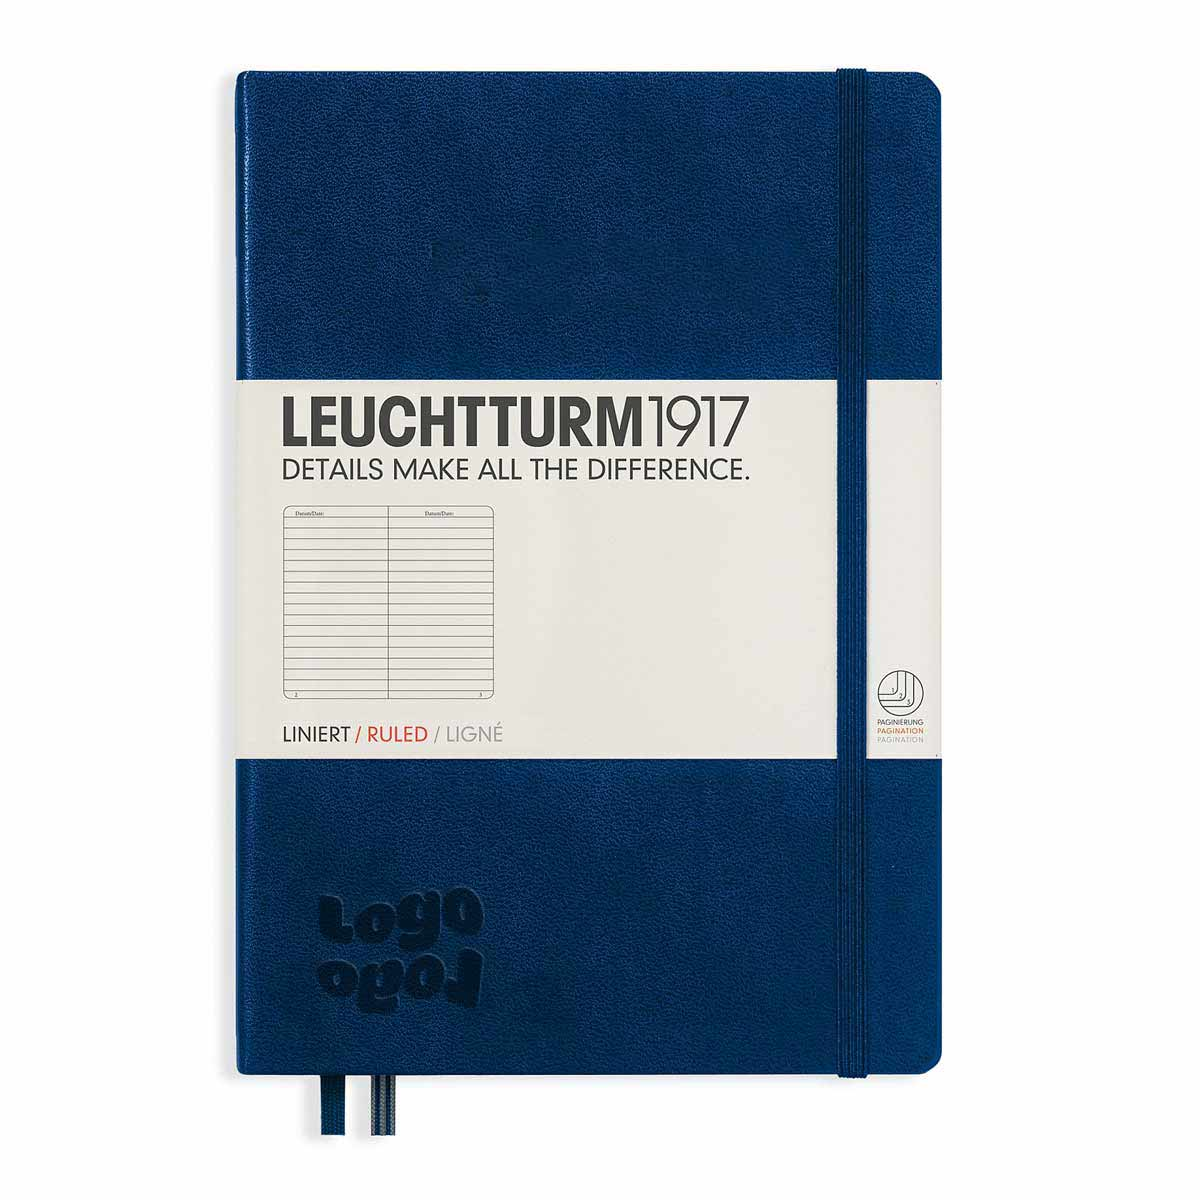 268303 medium hardcover notebook one location deboss or foil stamp on front cover